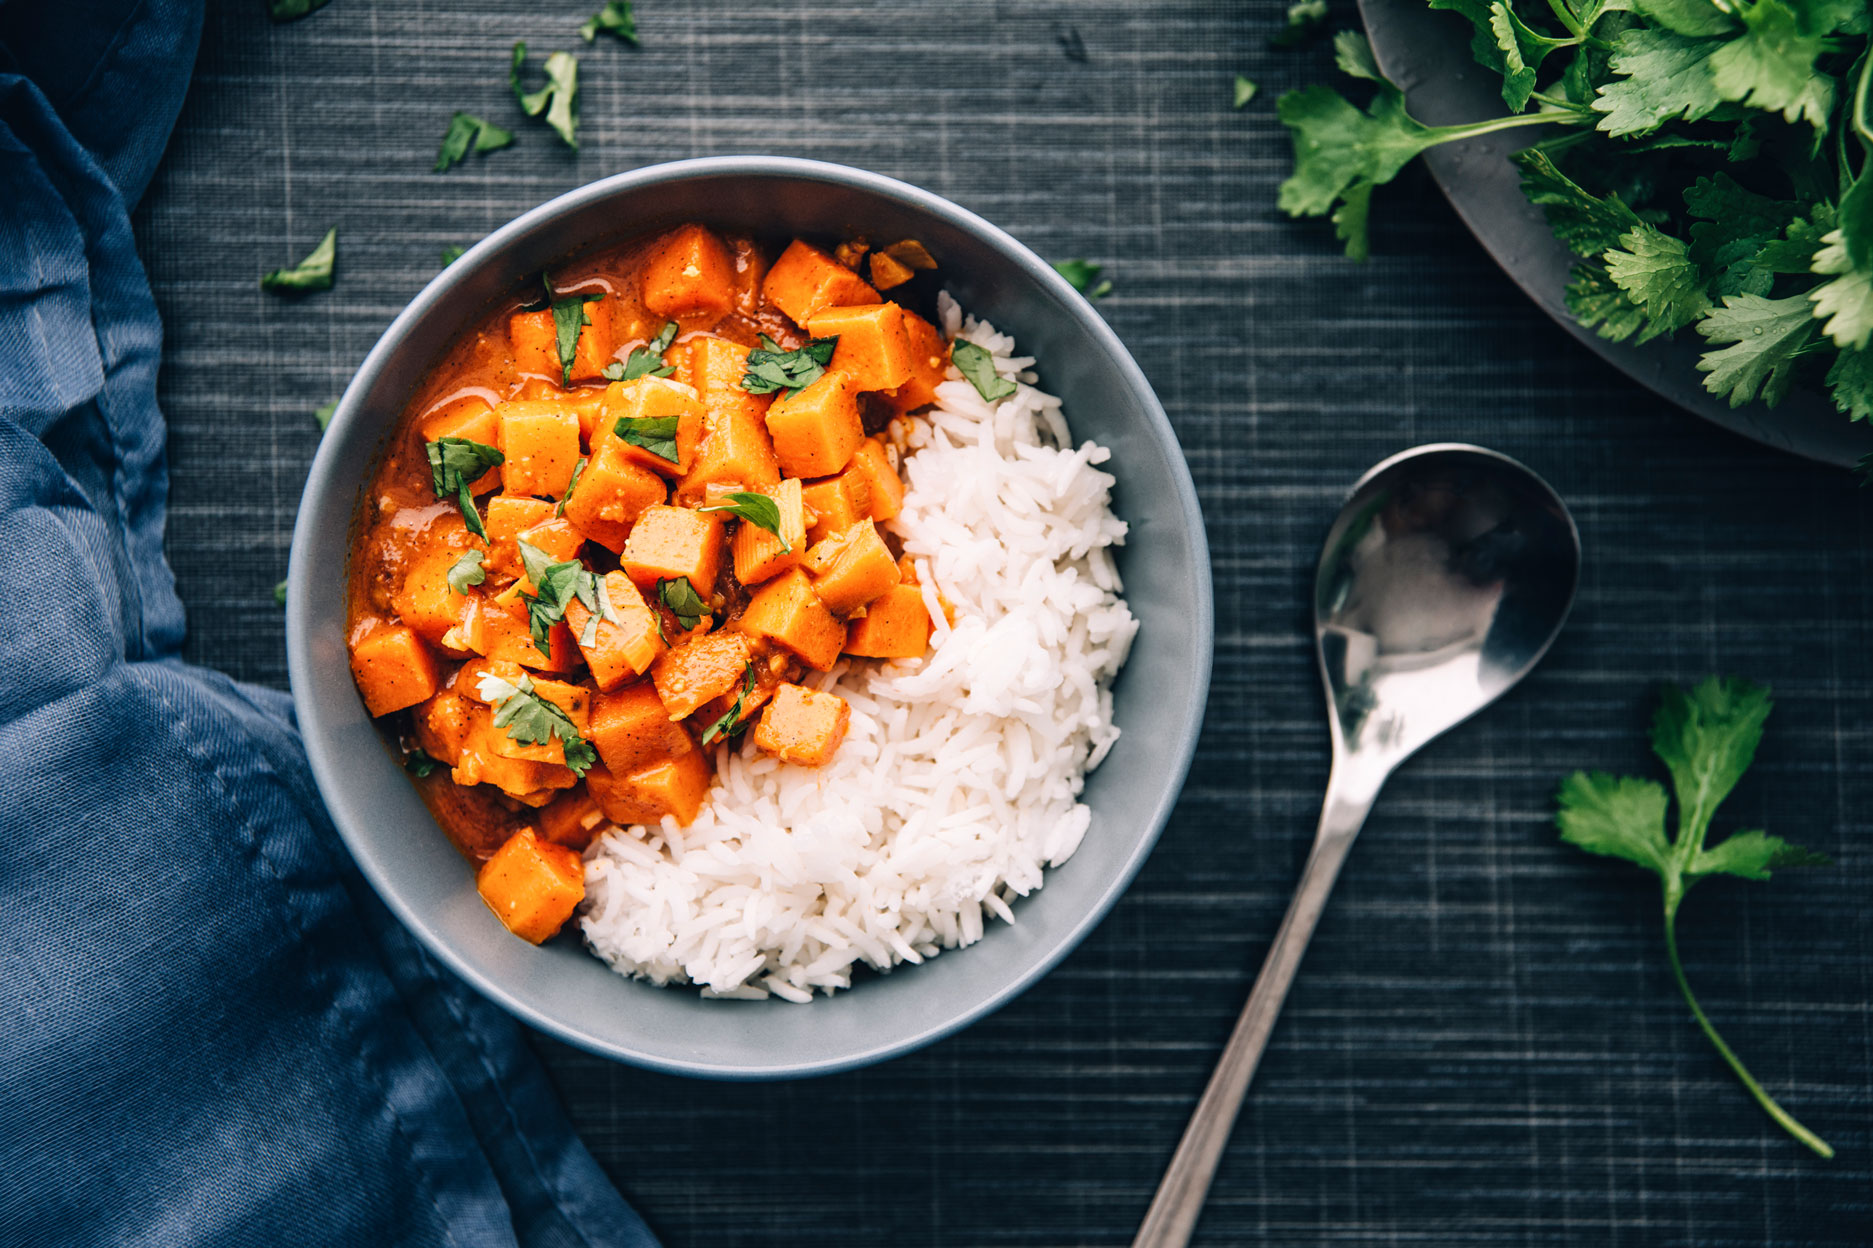 Sweetpotato ragout (vegan) with tomato,cocconut milk,roasted peanuts,garlic,ginger,cilantro, served with rice